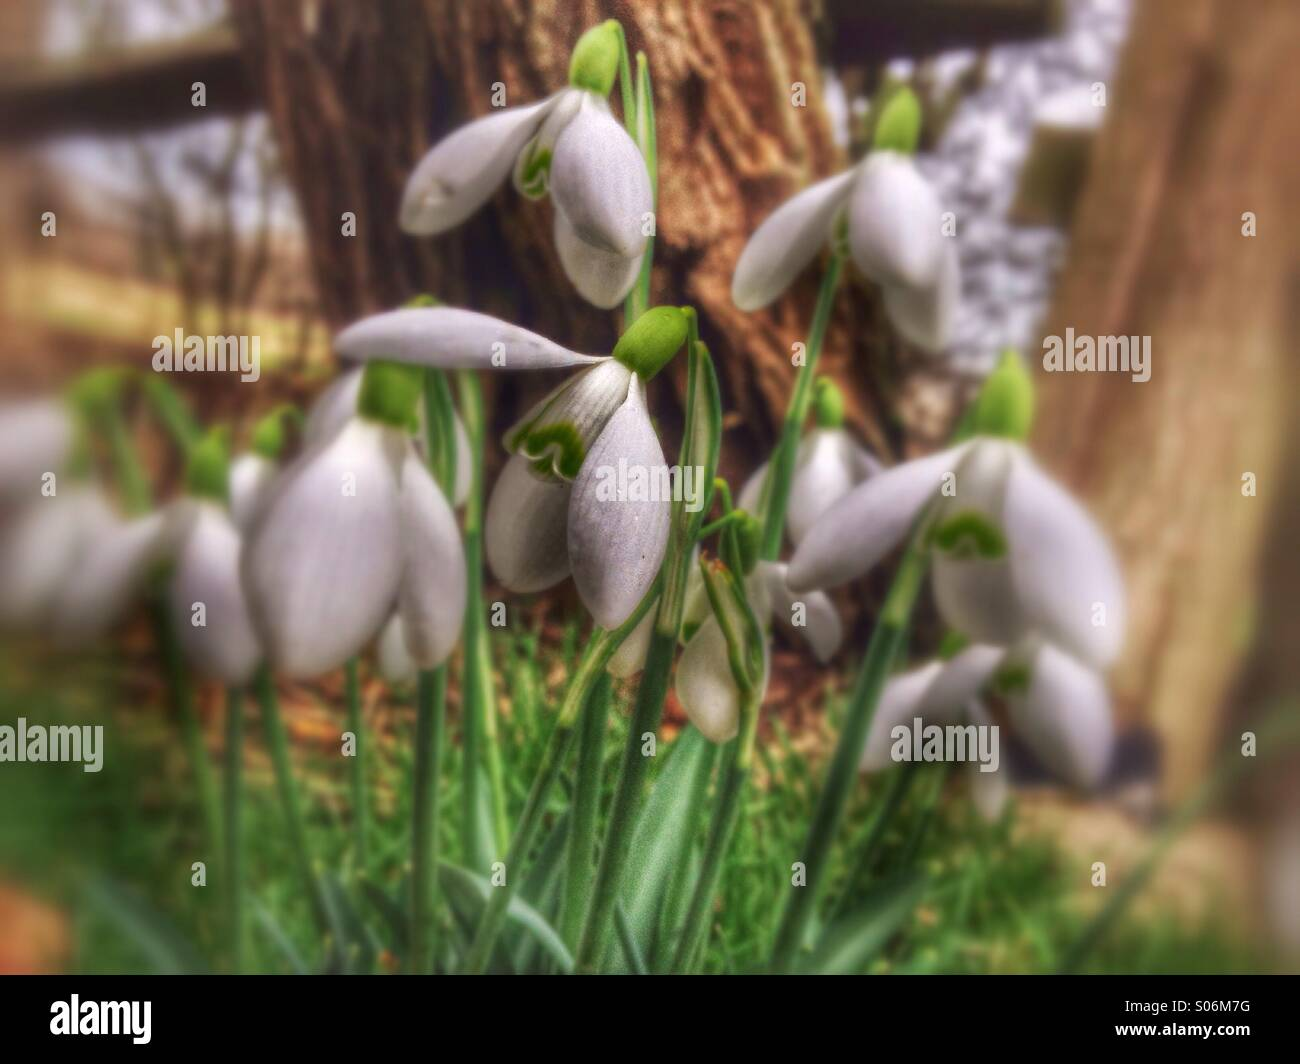 A drift of Snowdrops - Stock Image